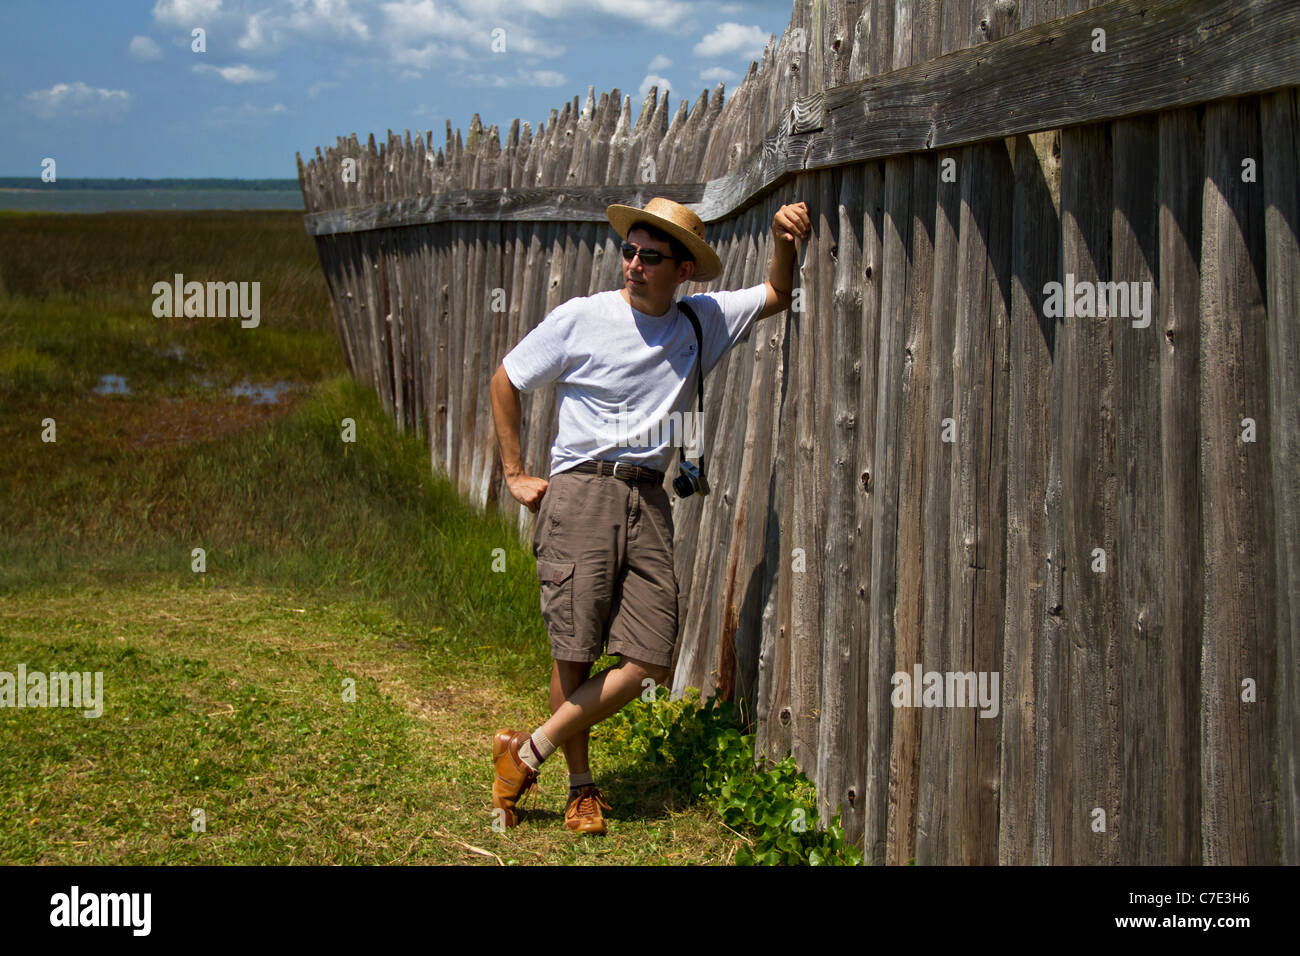 Man leaning against fence at Fort Fisher, North Carolina - Stock Image